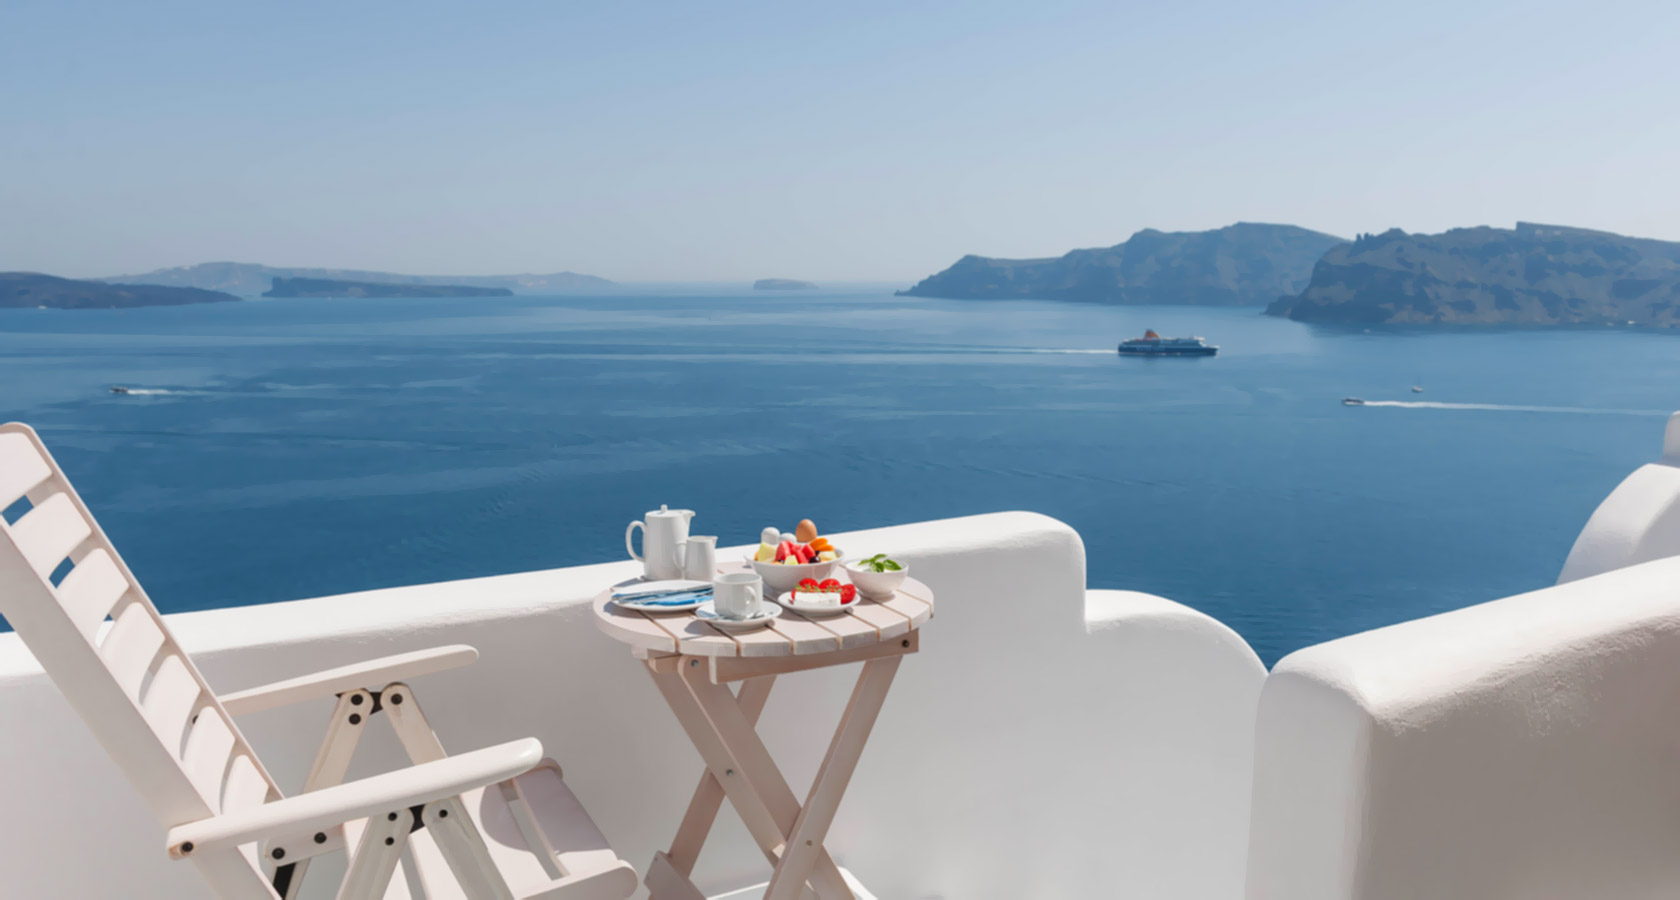 Thirea Suites in Oia Santorini – Private balcony with sea view